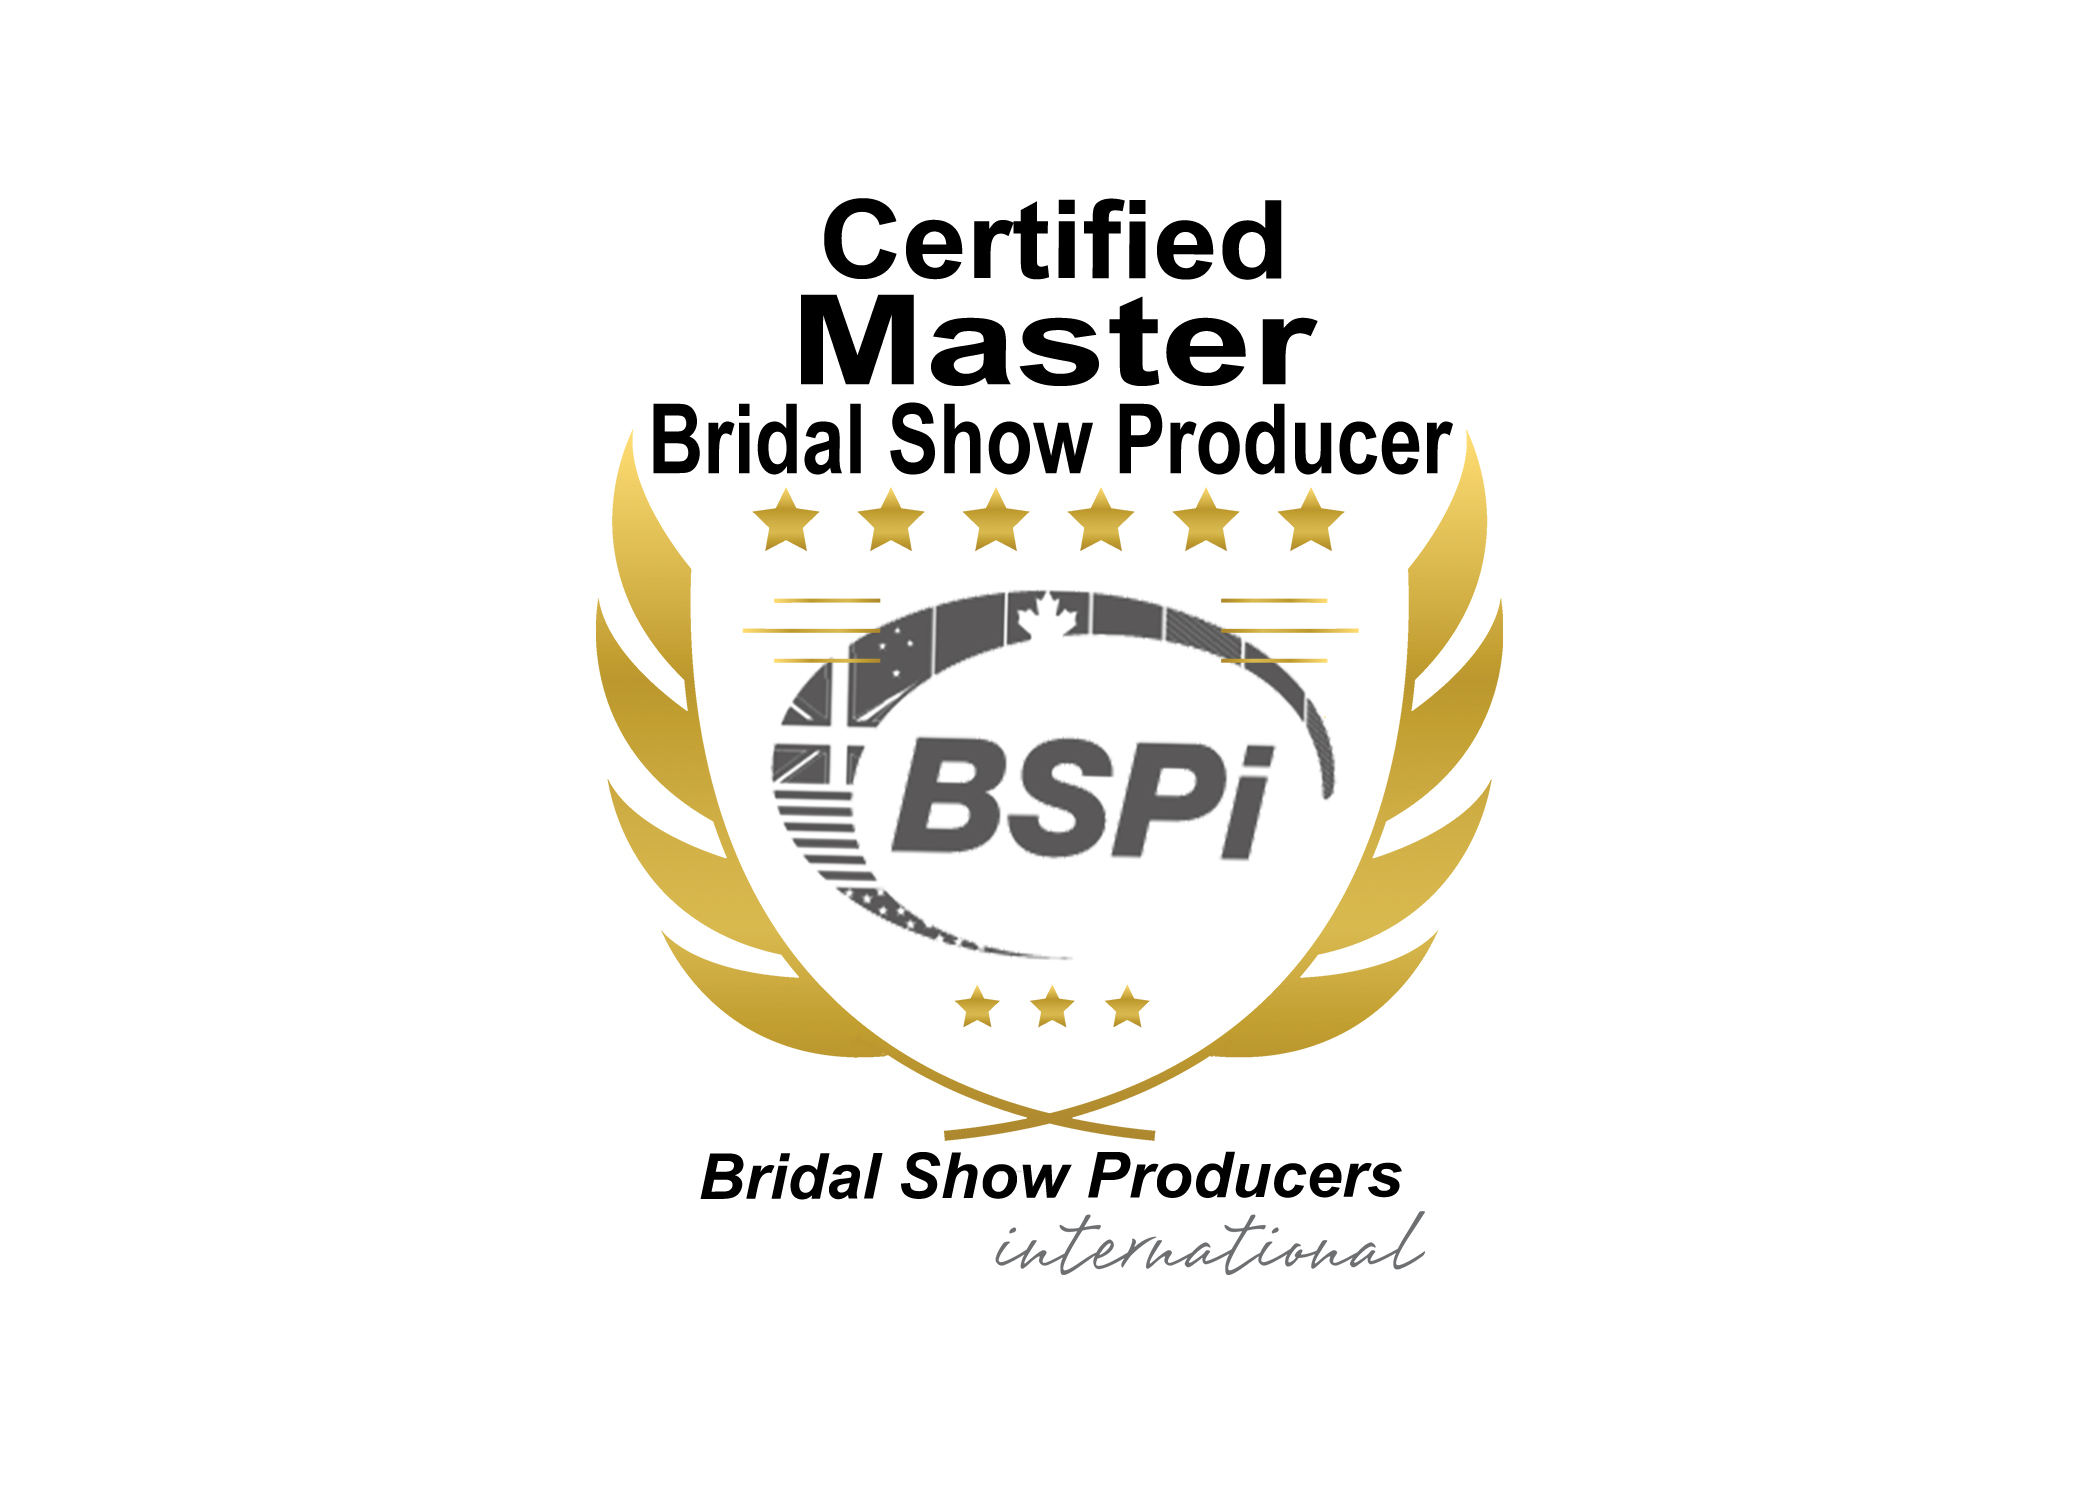 Bridal Show Producers International Certified Master